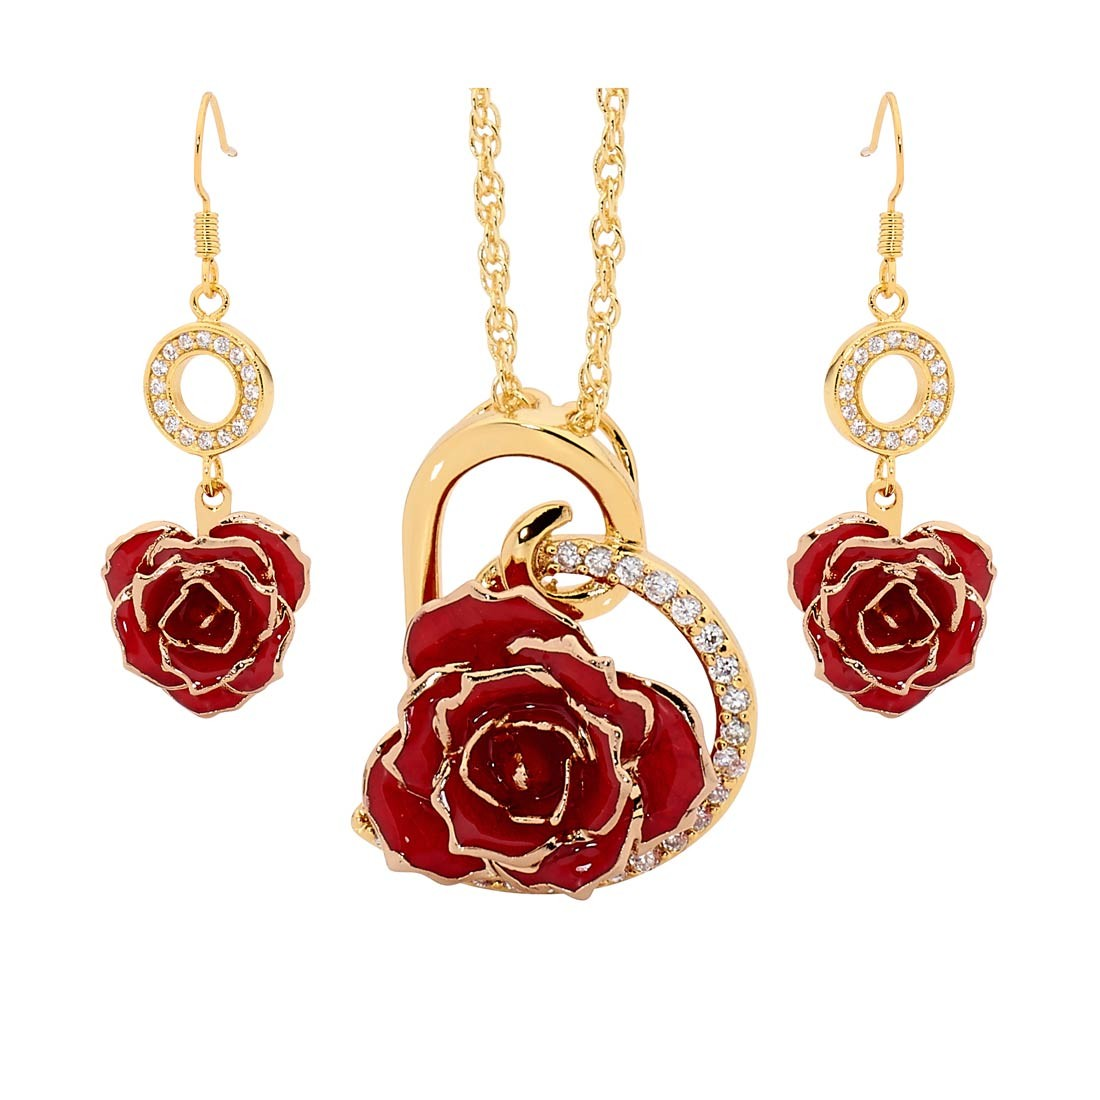 24karat Gold Earrings In Red · Back